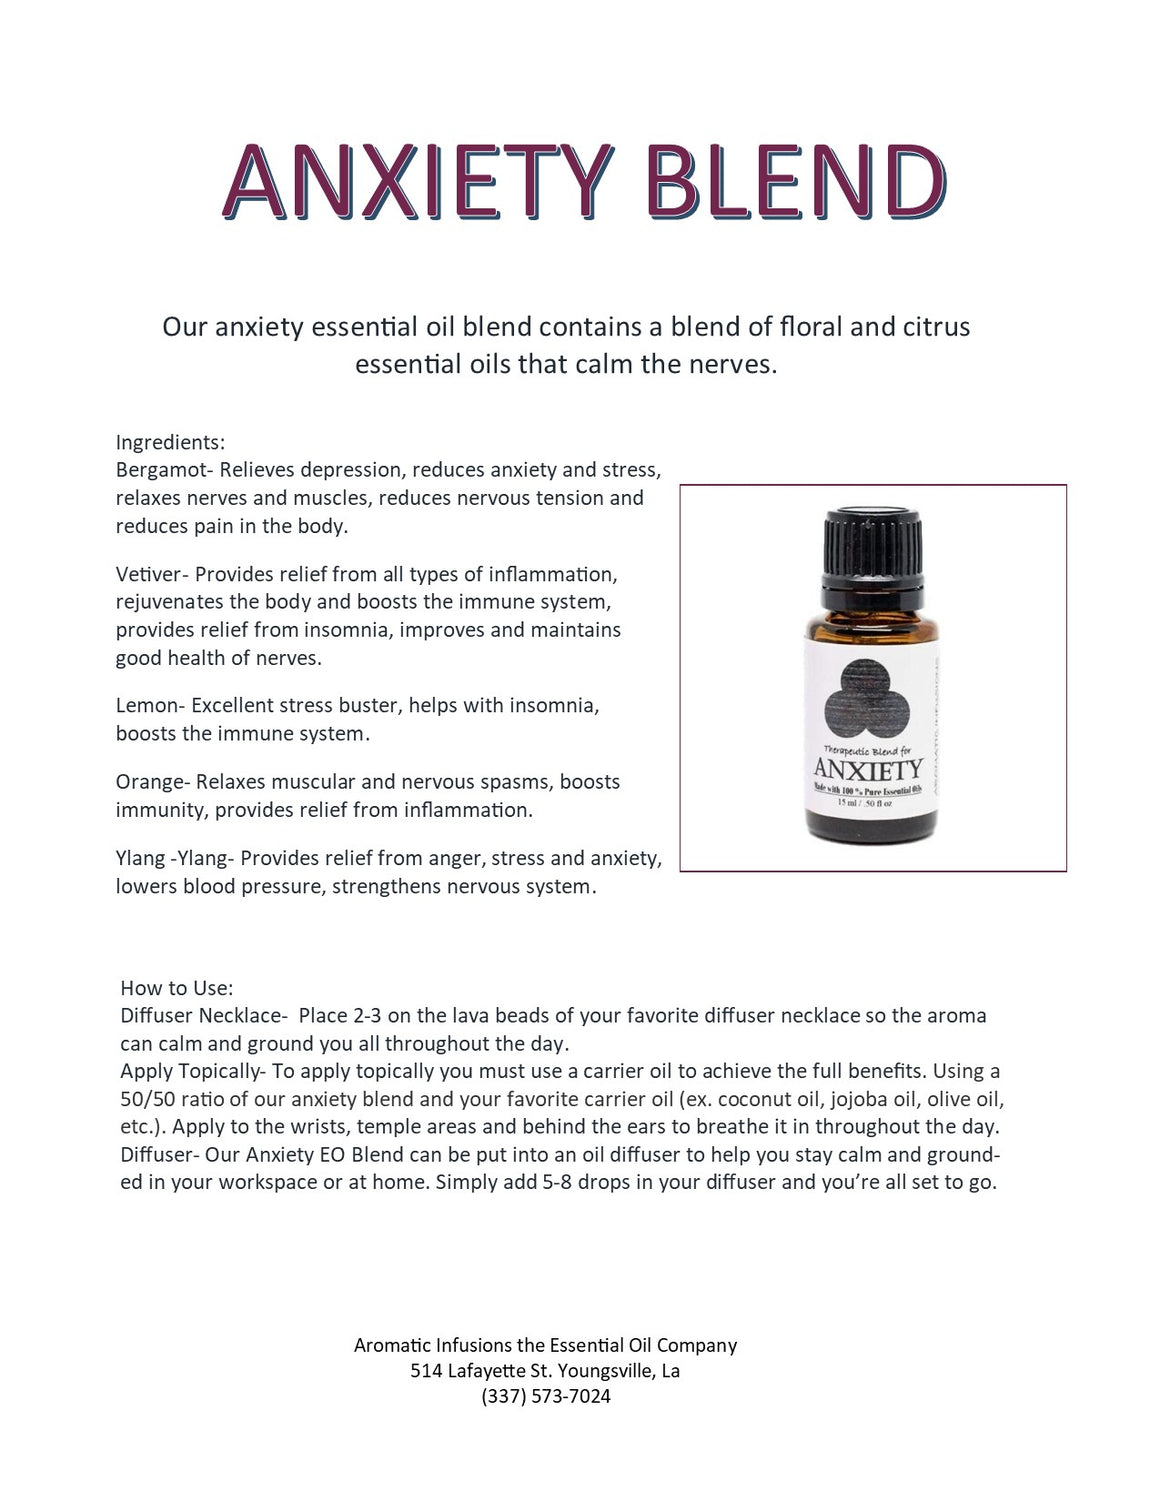 Anxiety Blend 15ml - Aromatic Infusions